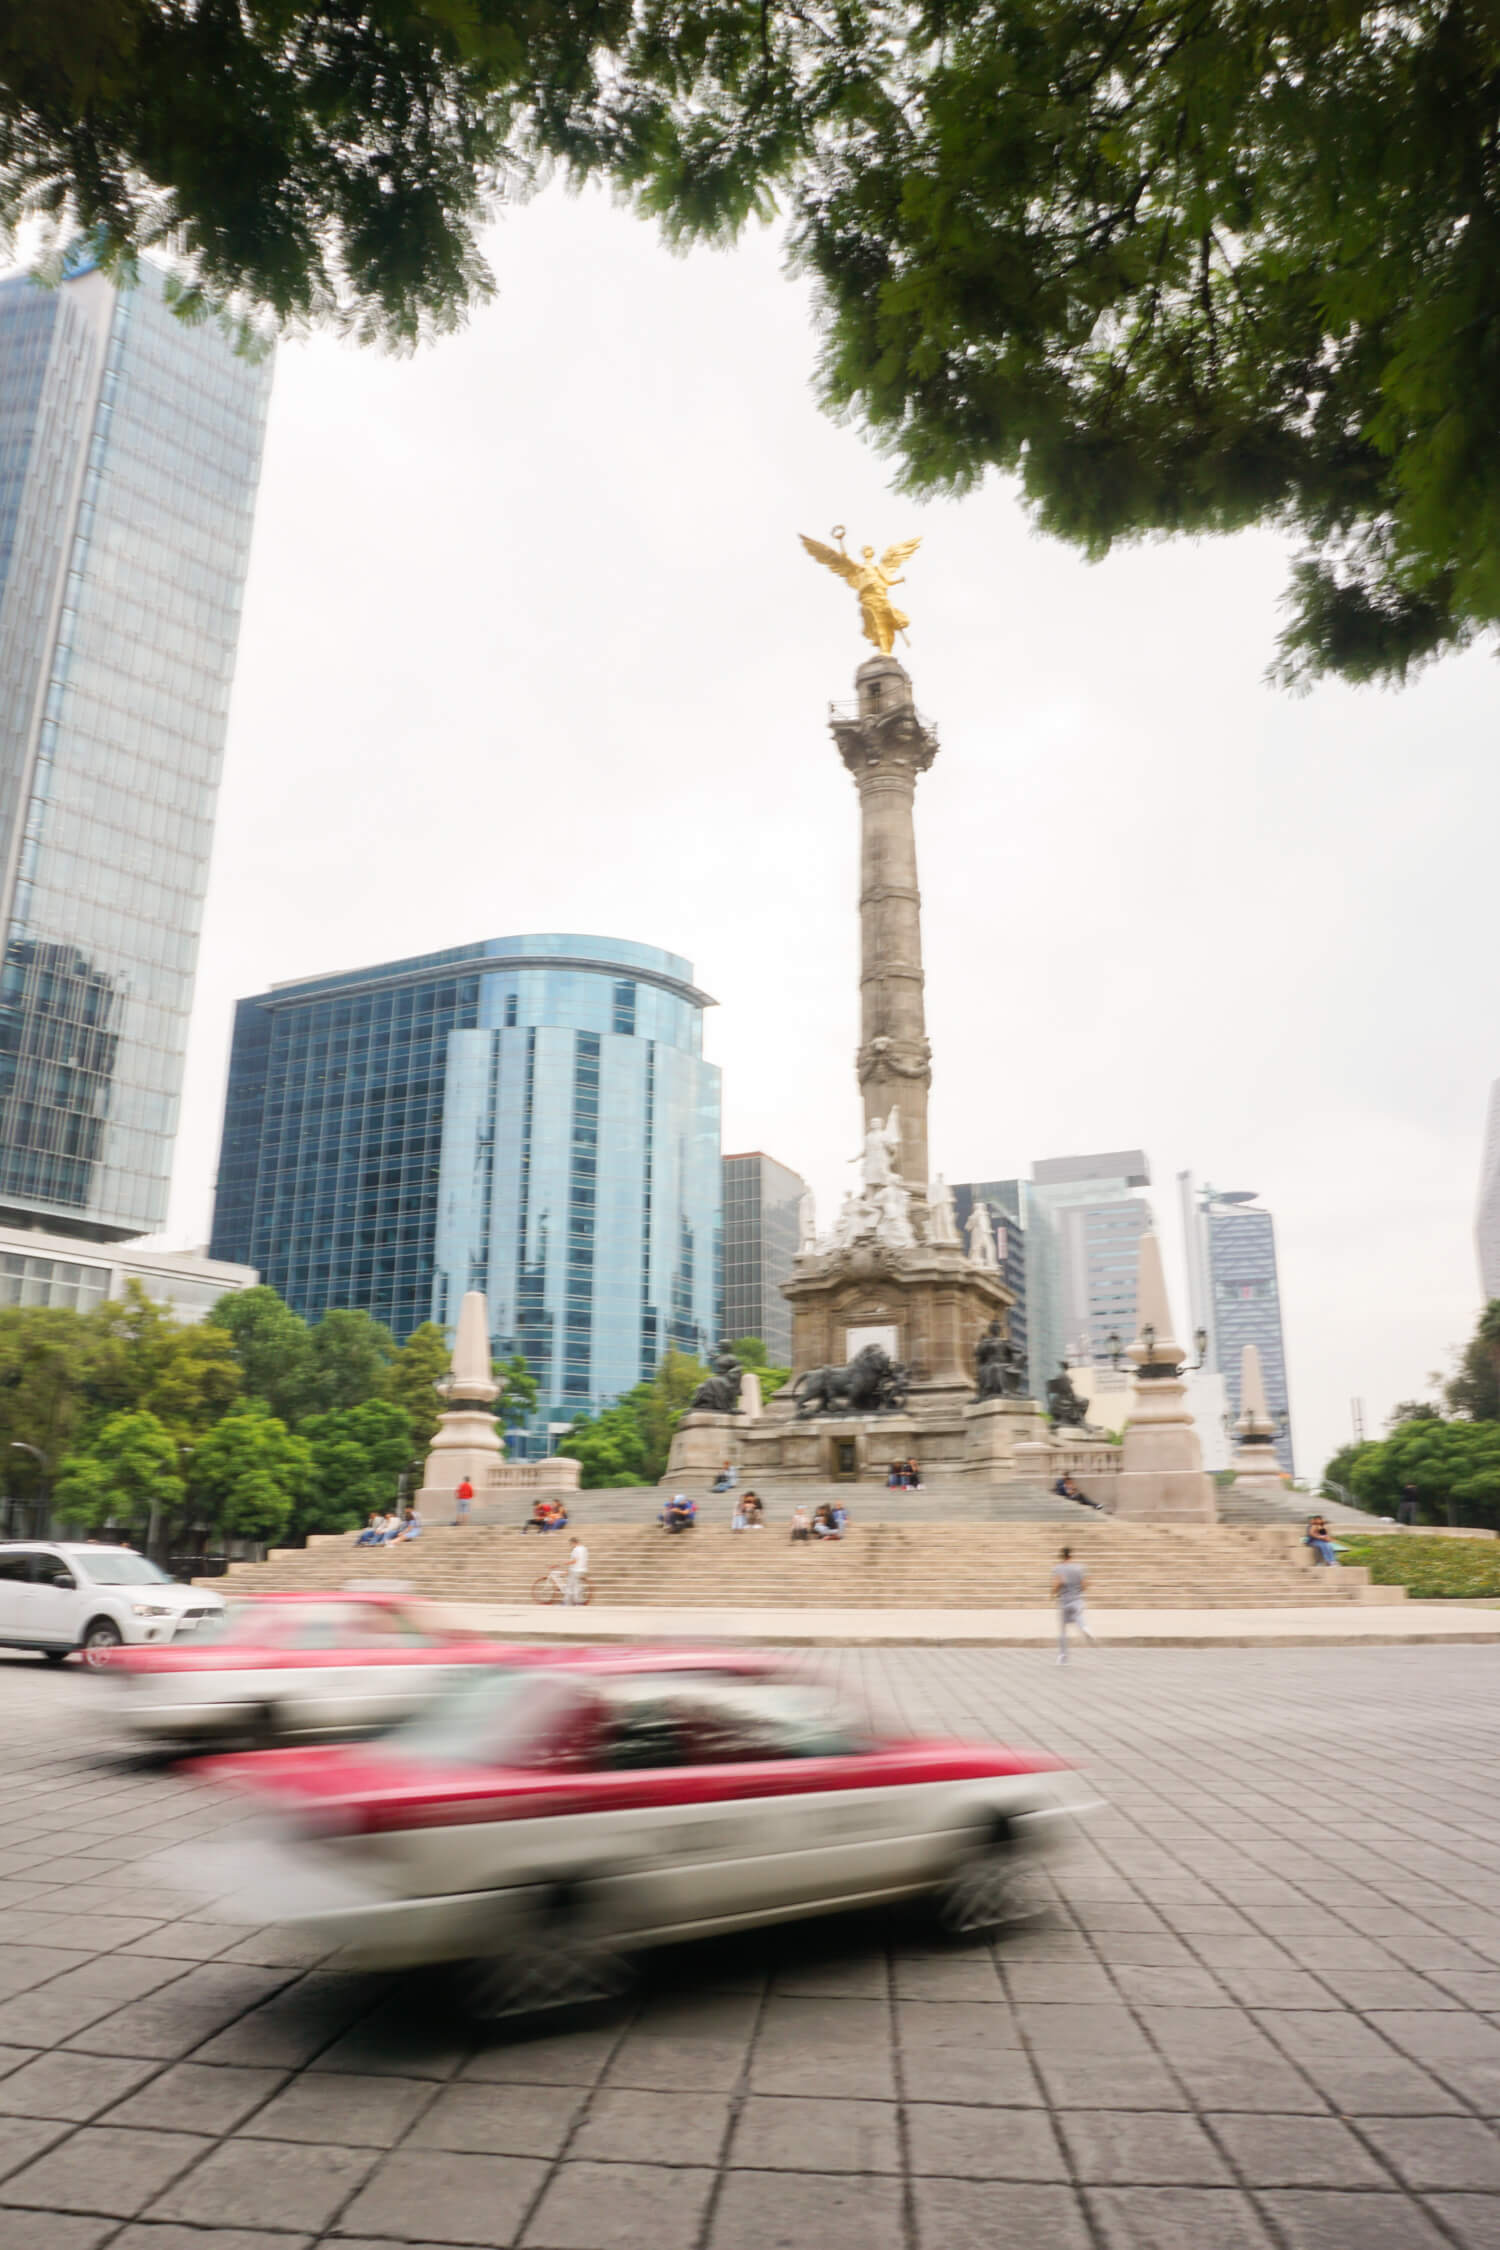 What To Do in Mexico City: FREE Walking Tour with Estación Mexico